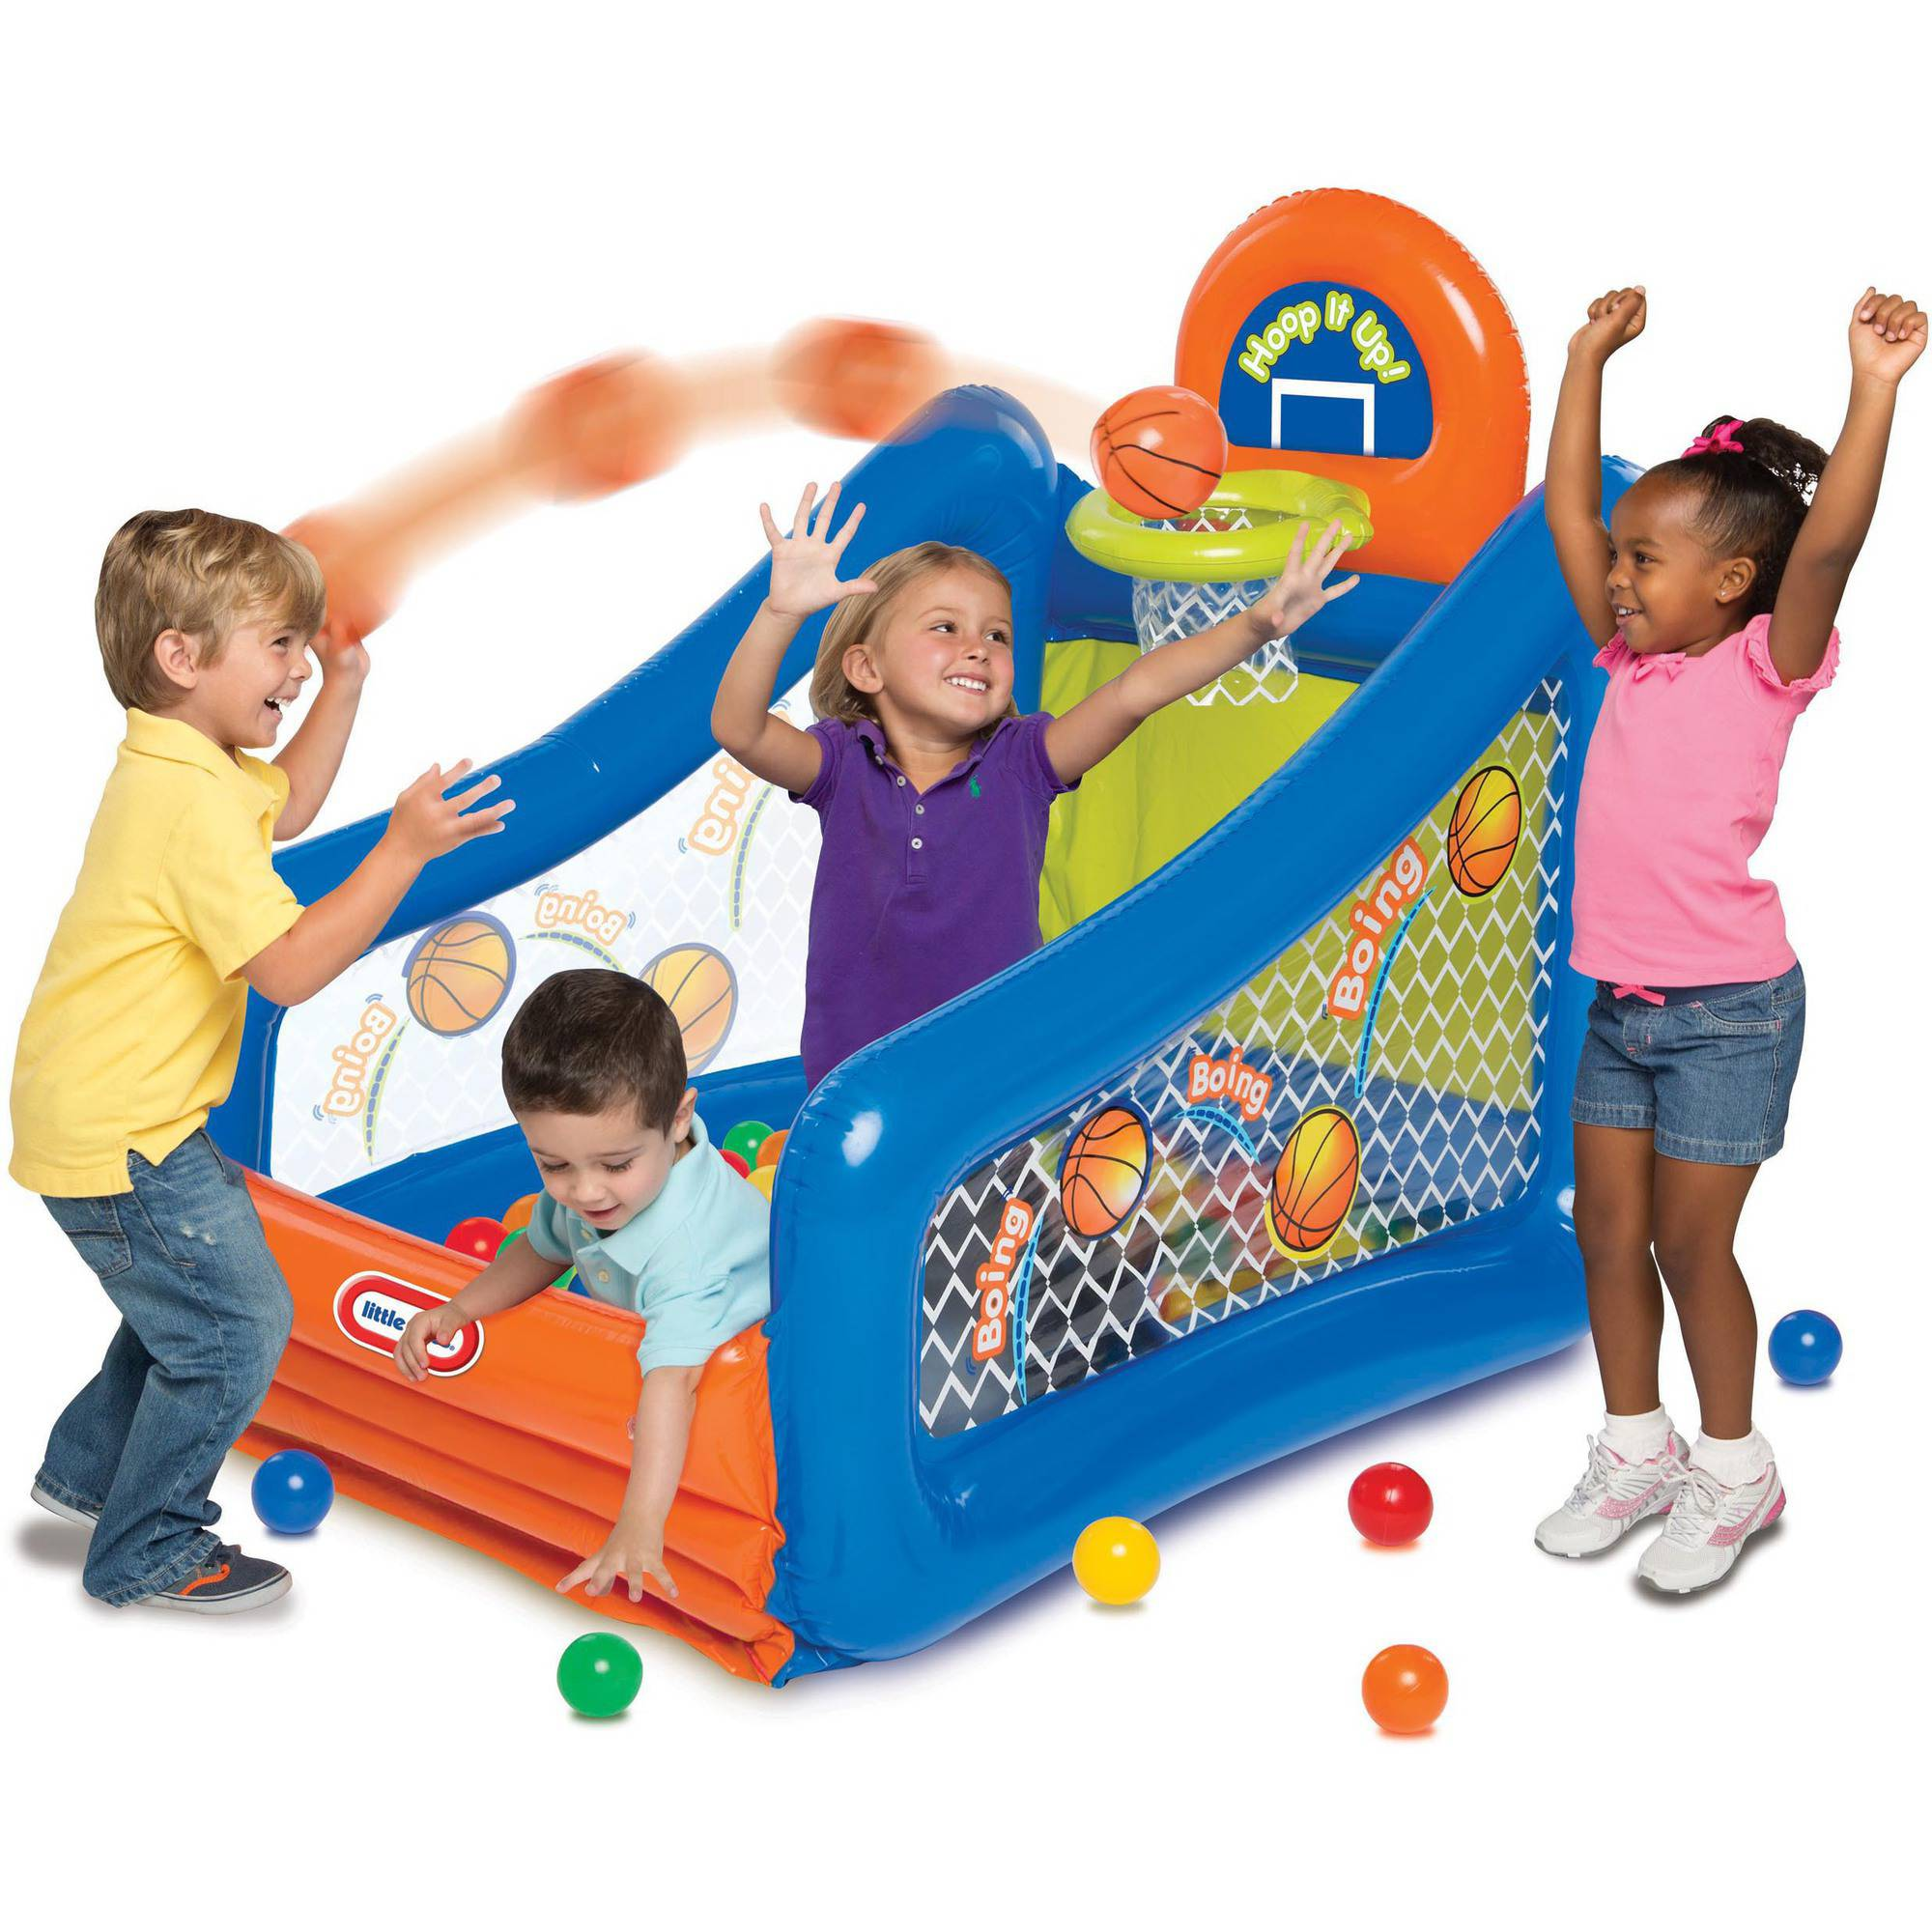 Little Tikes Hoop it up Value Pack